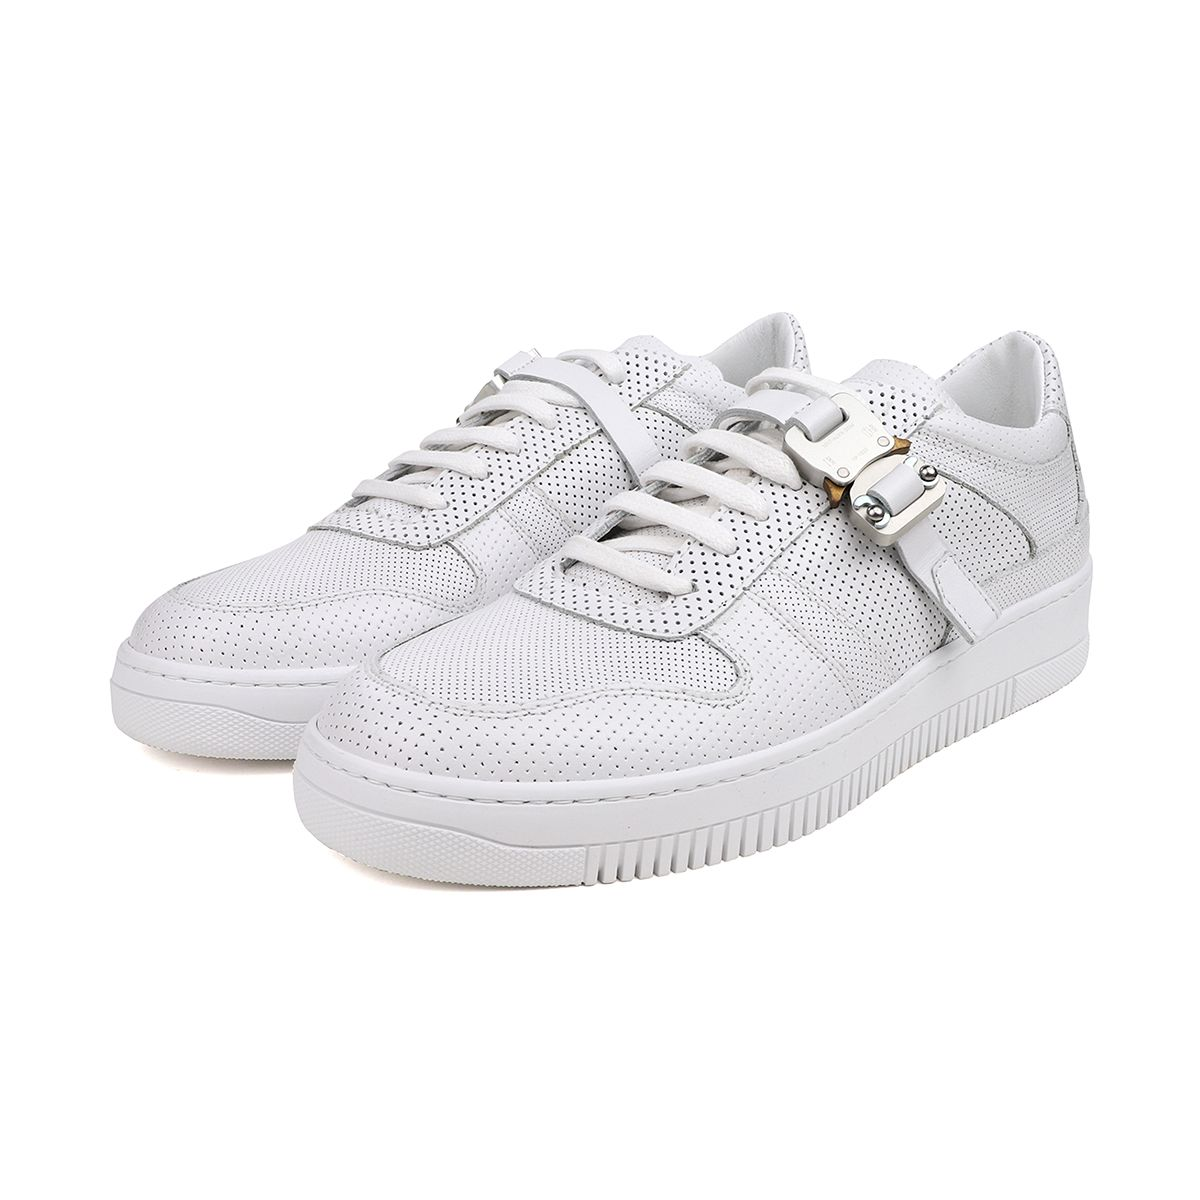 1017 ALYX 9SM BUCKLE LOW TRAINER / WTH0001 : WHITE